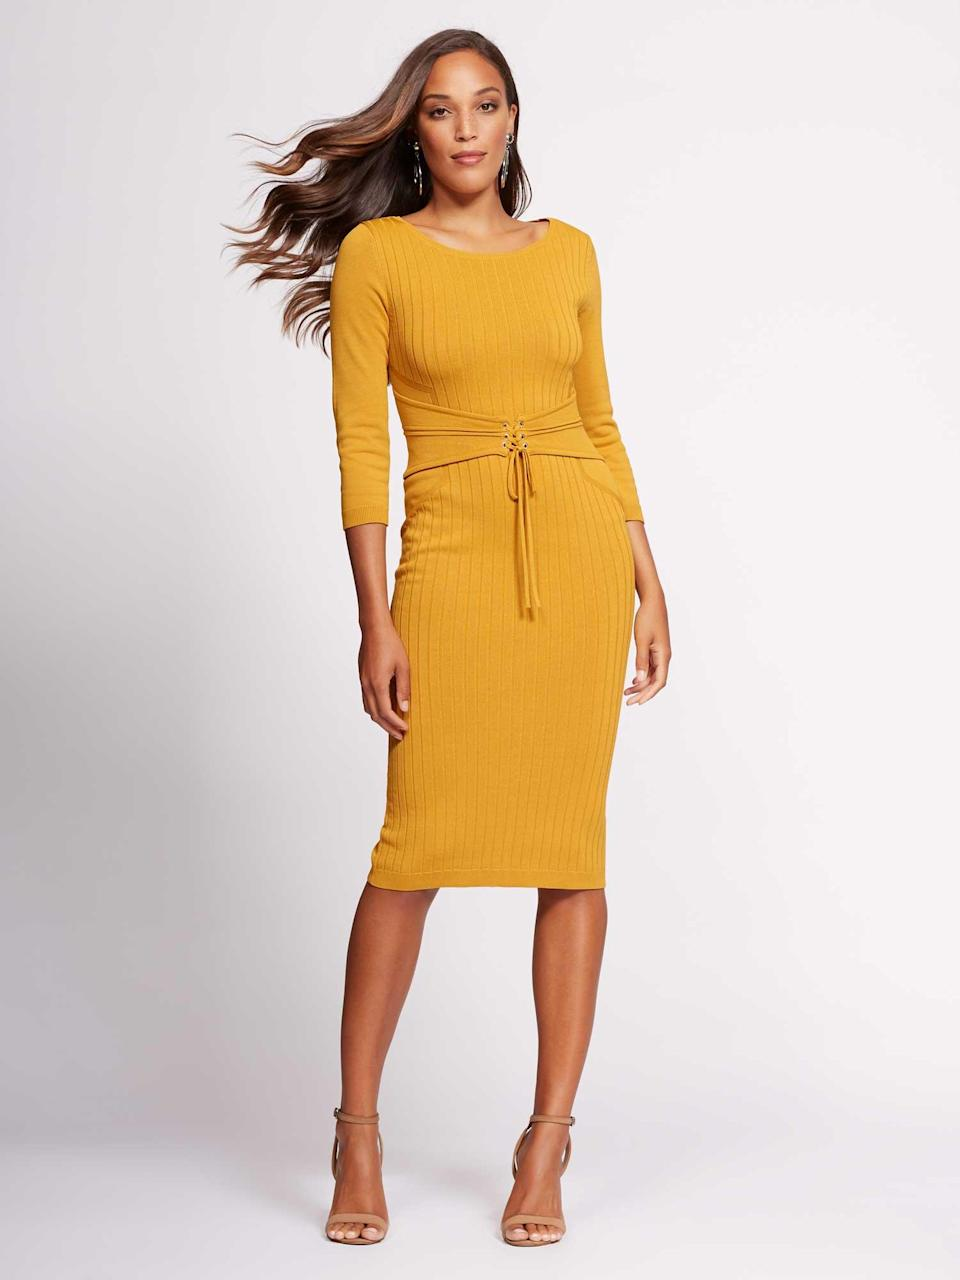 Mustard-yellow dress is perfect for the workplace. (Photo: Courtesy of New York & Company)